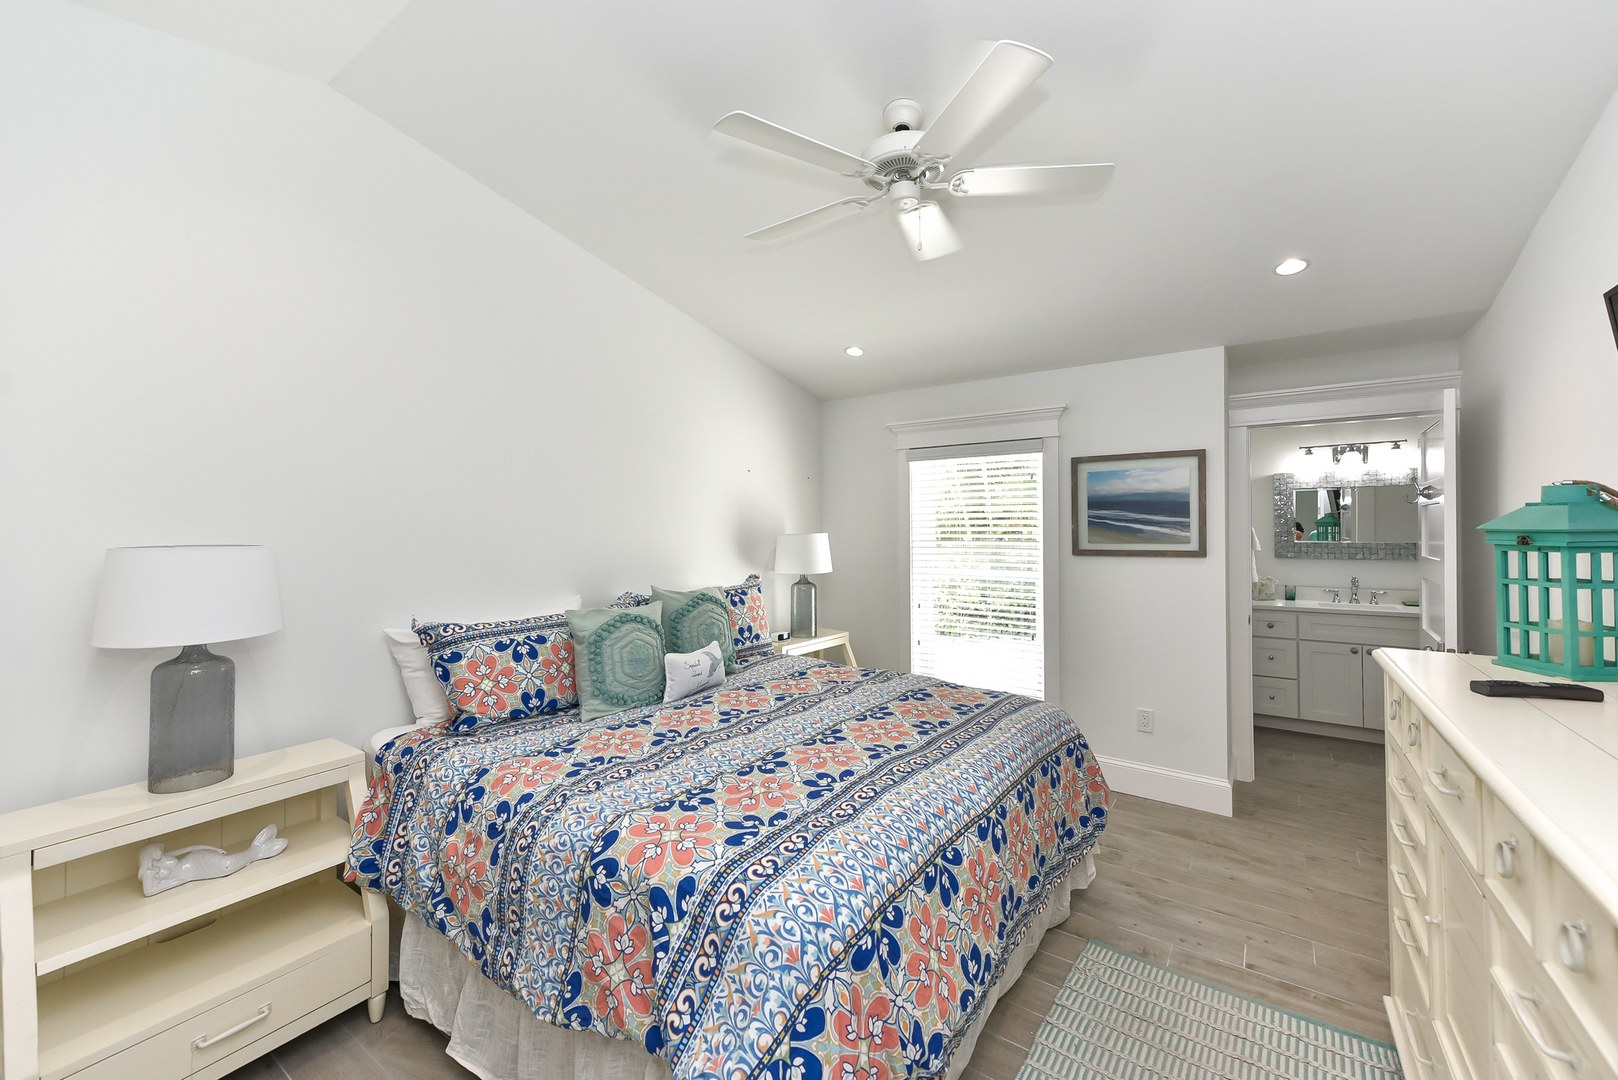 EXAMPLE - Bedroom 3 - King bed